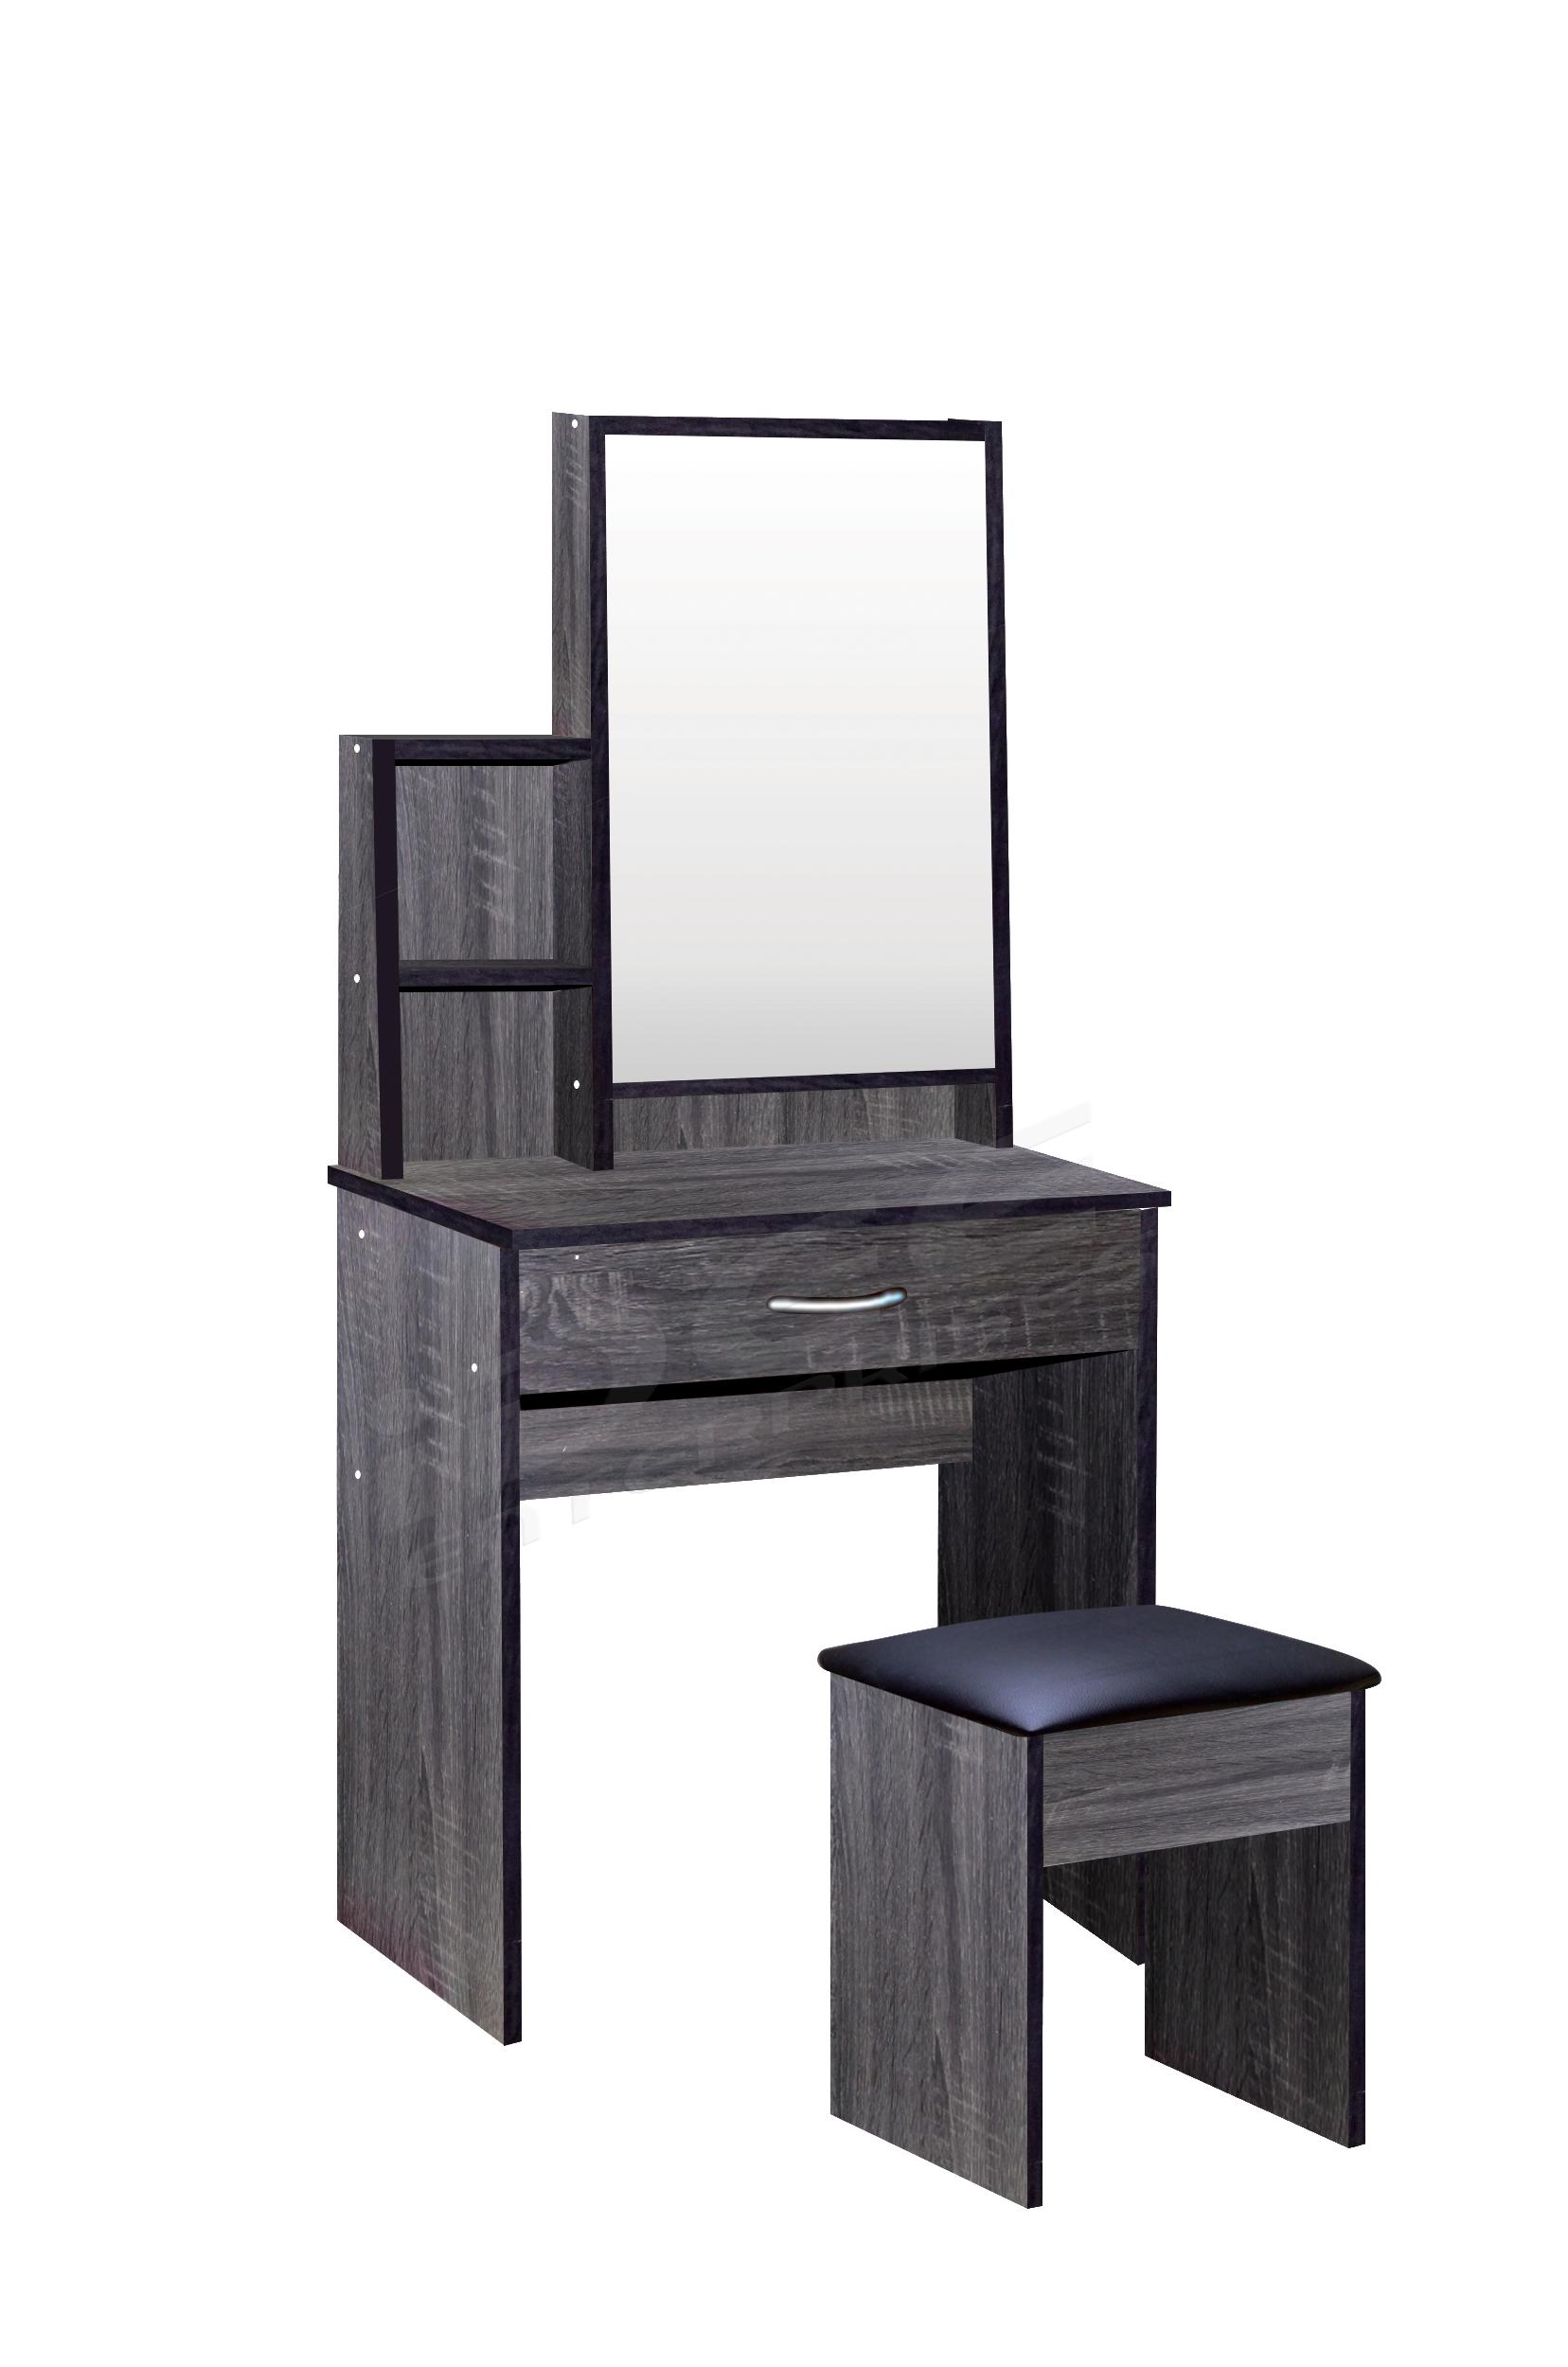 Dresser Chests For Sale Clothing Chests Prices Brands Review In